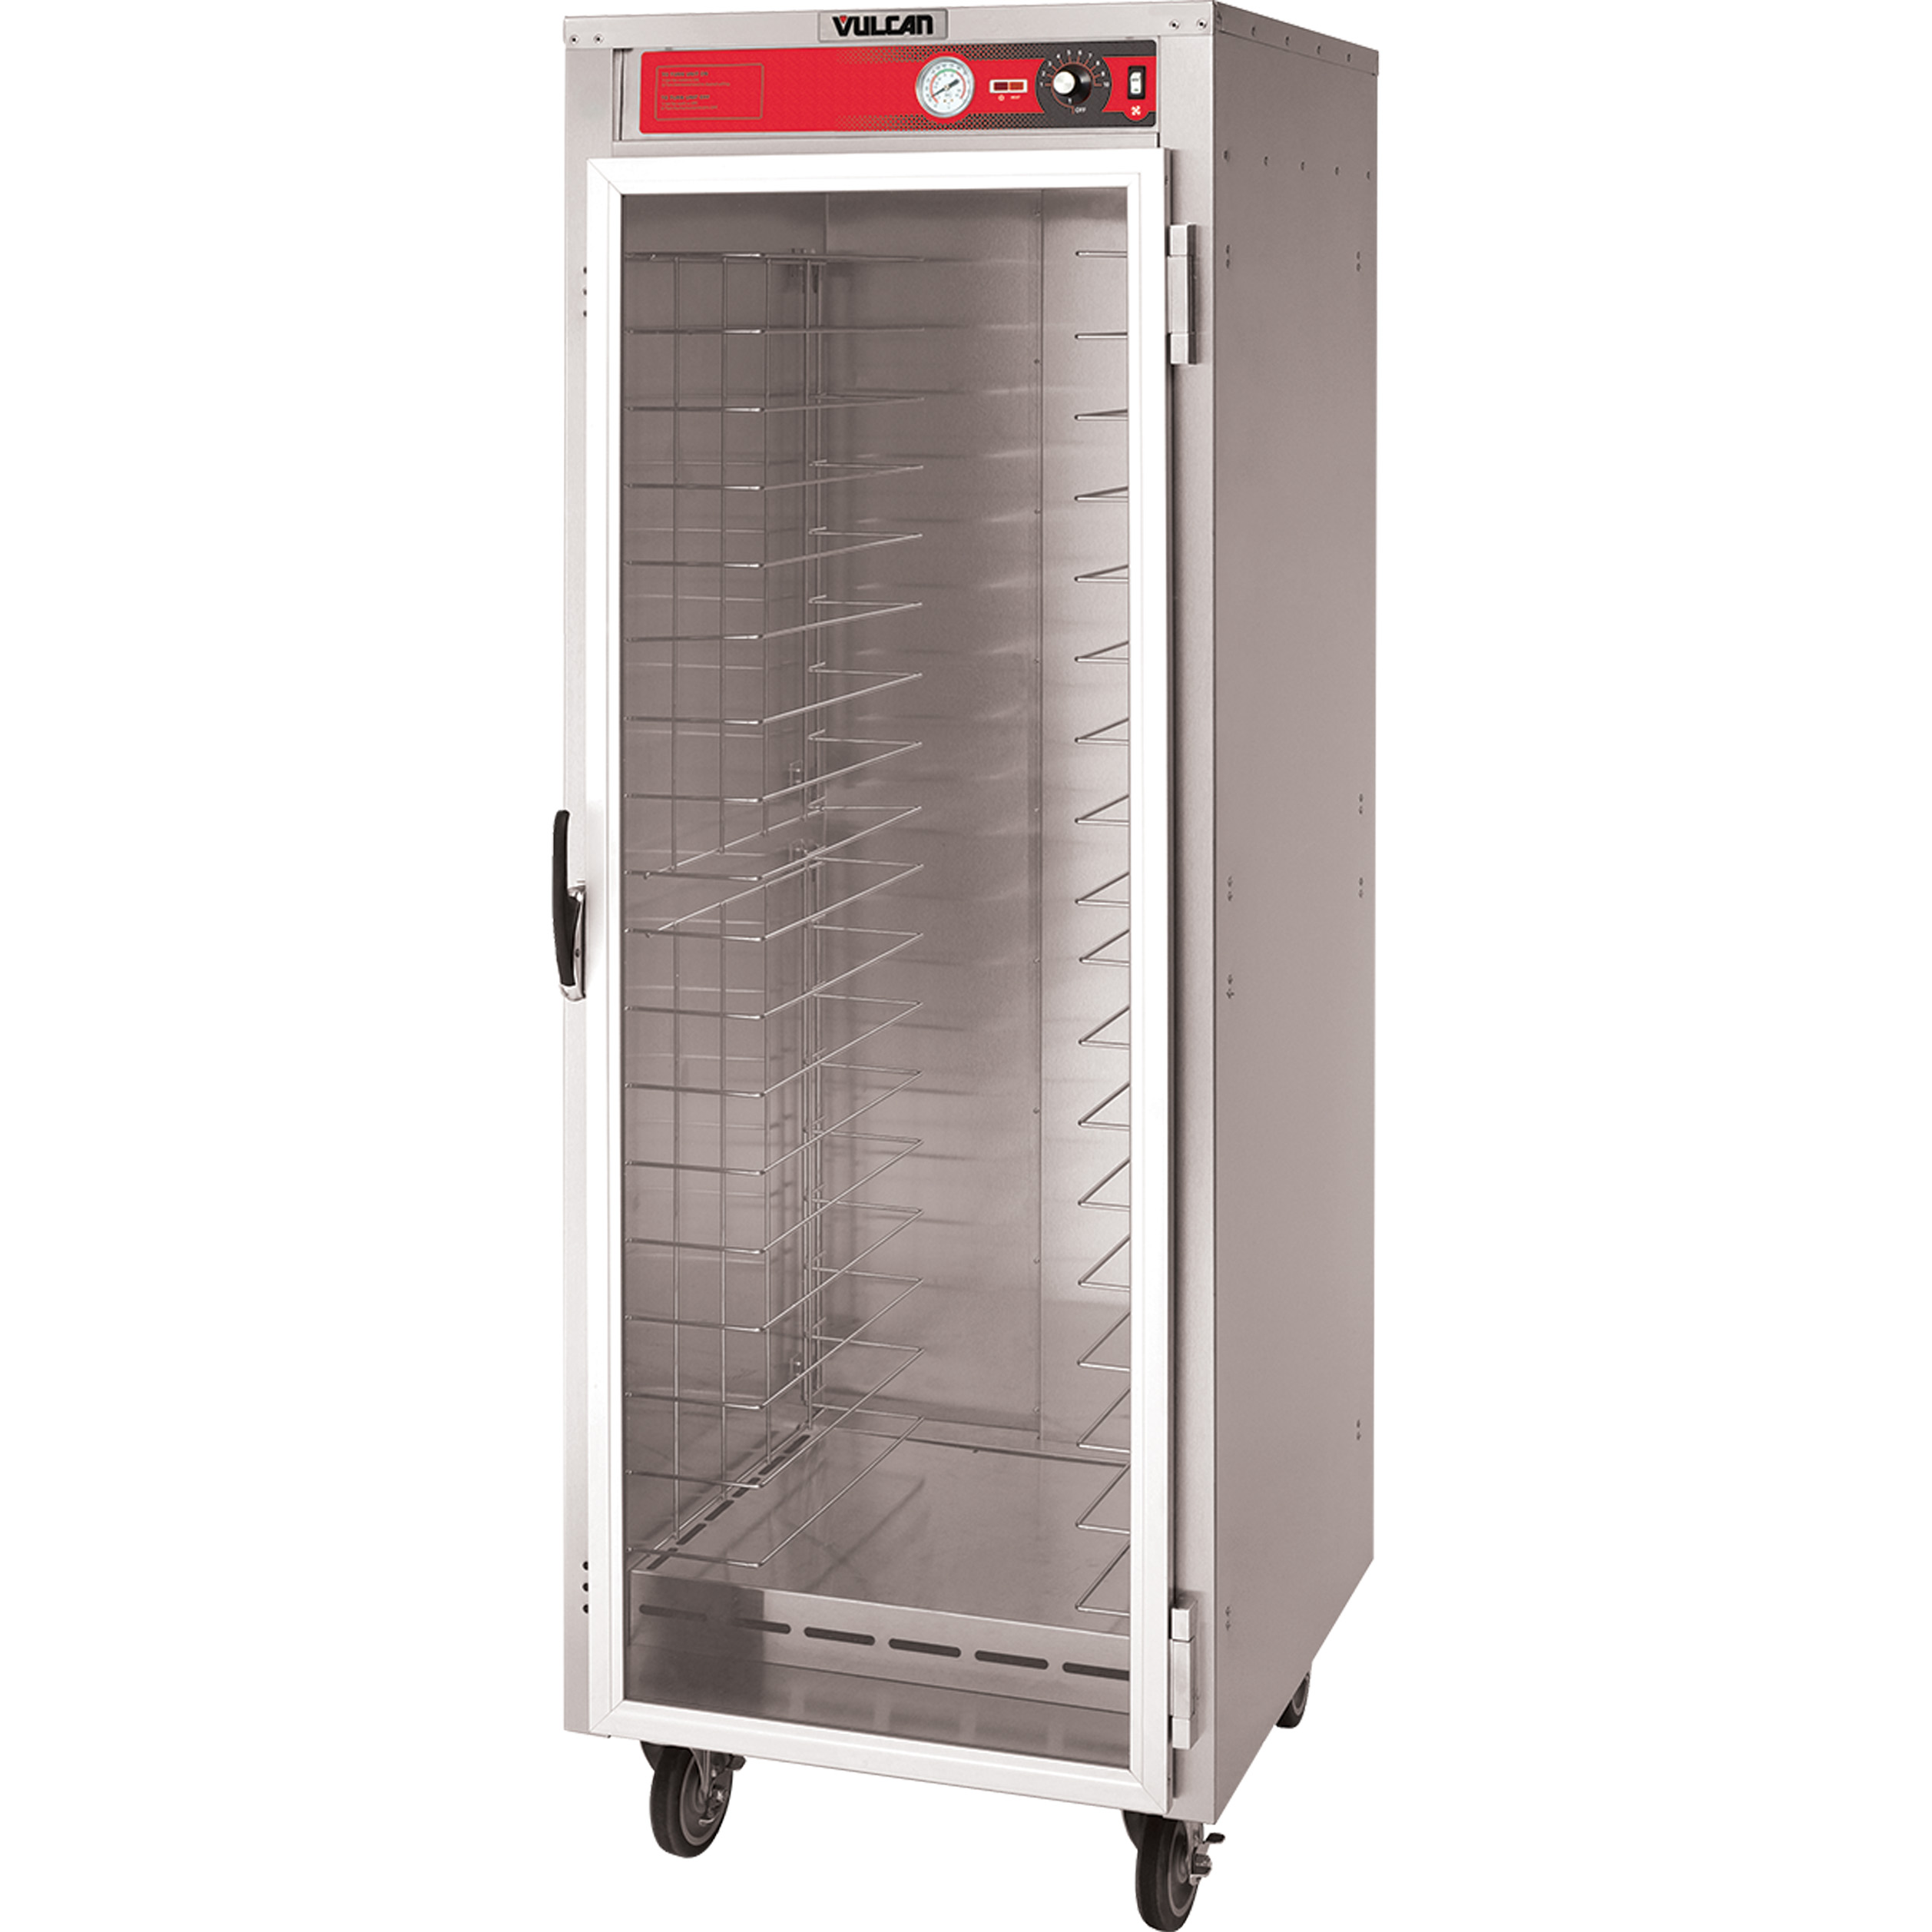 Vulcan VHFA18 heated cabinet, mobile